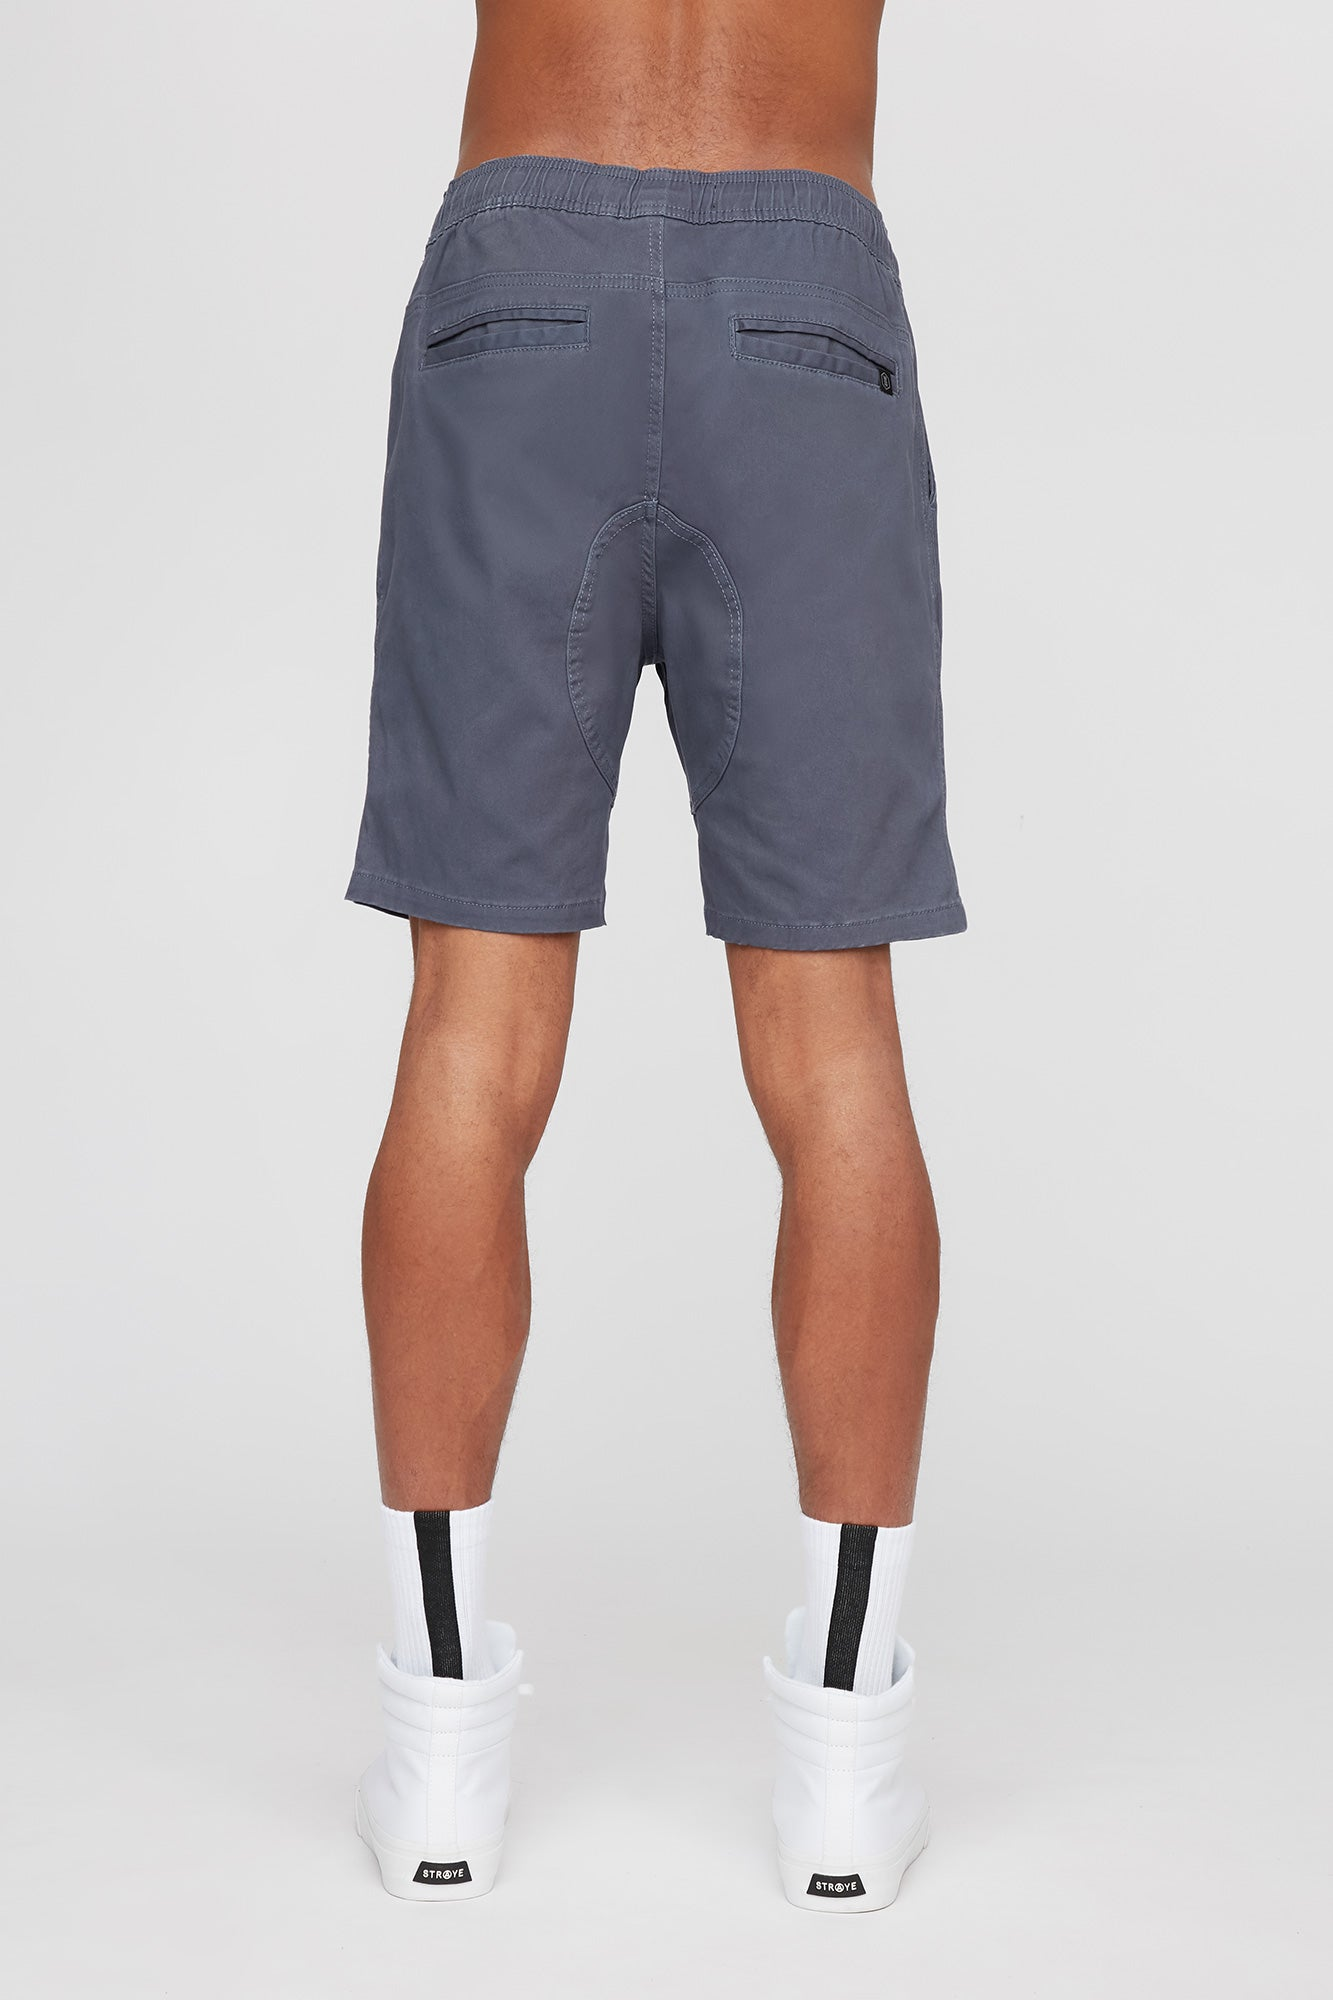 West 49 Guys Blue Gusset Jogger